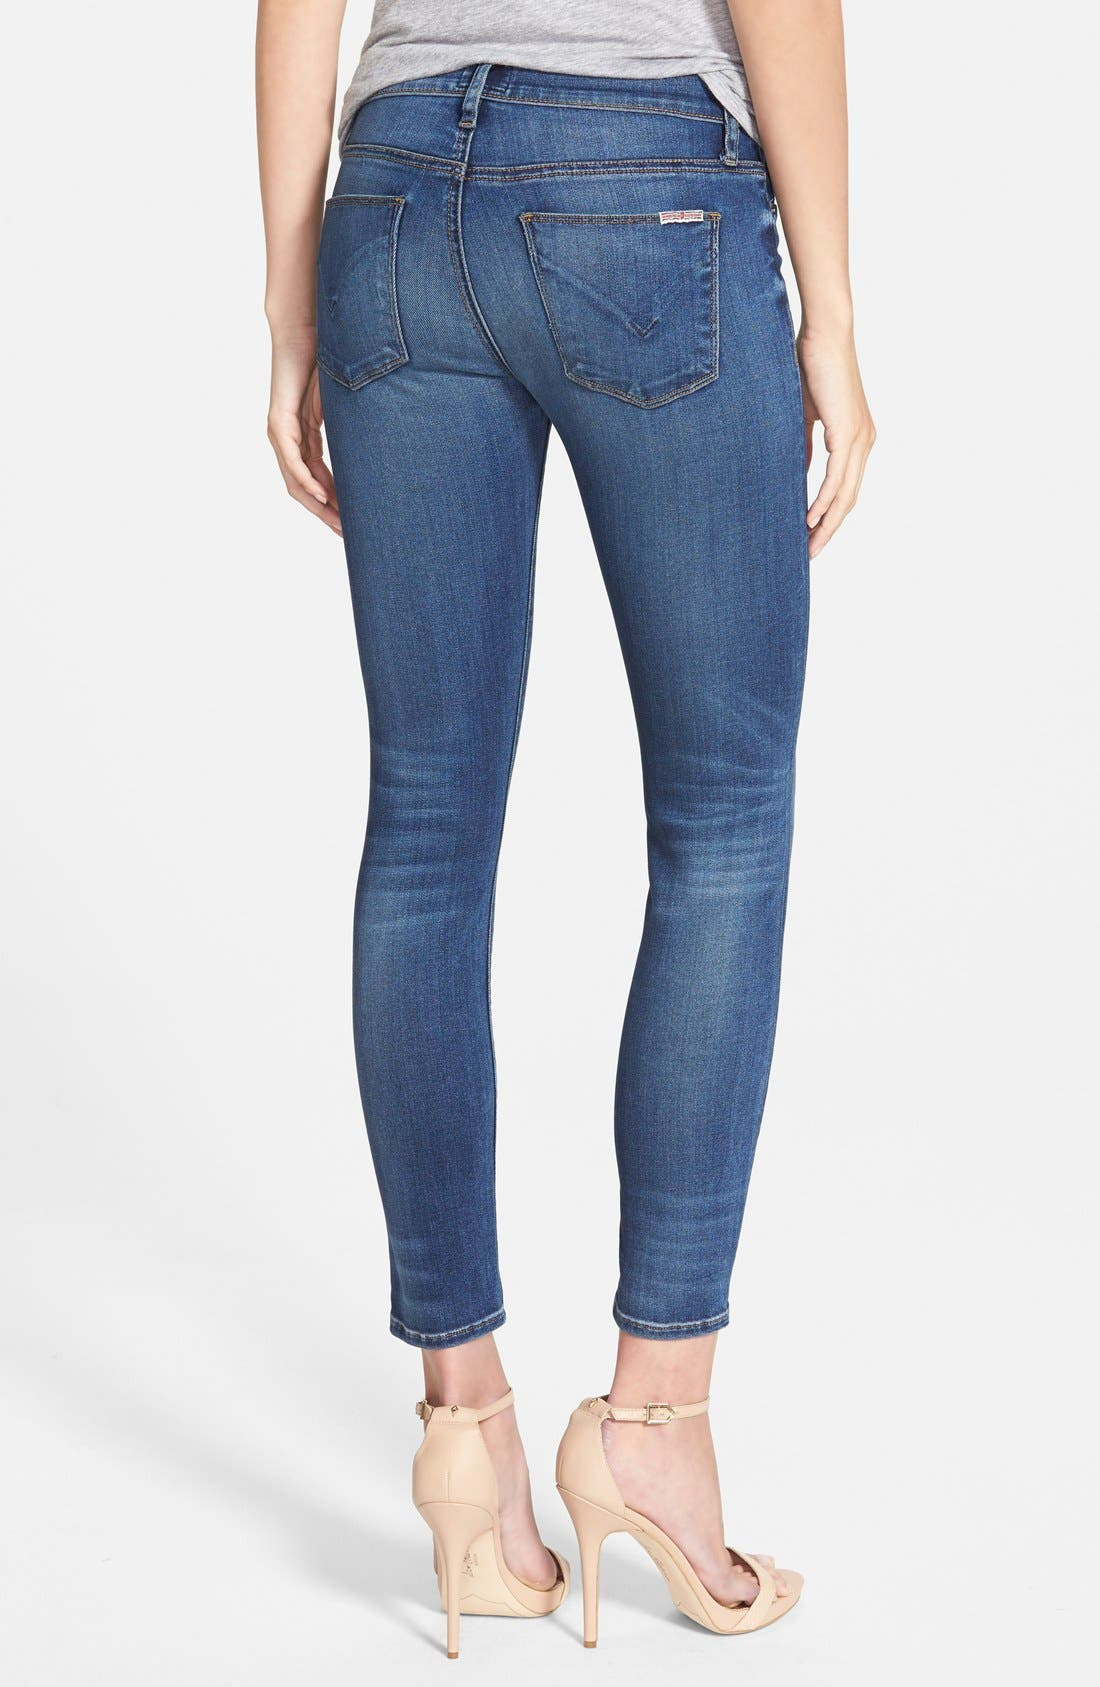 'Nico' Ankle Skinny Jeans,                             Alternate thumbnail 11, color,